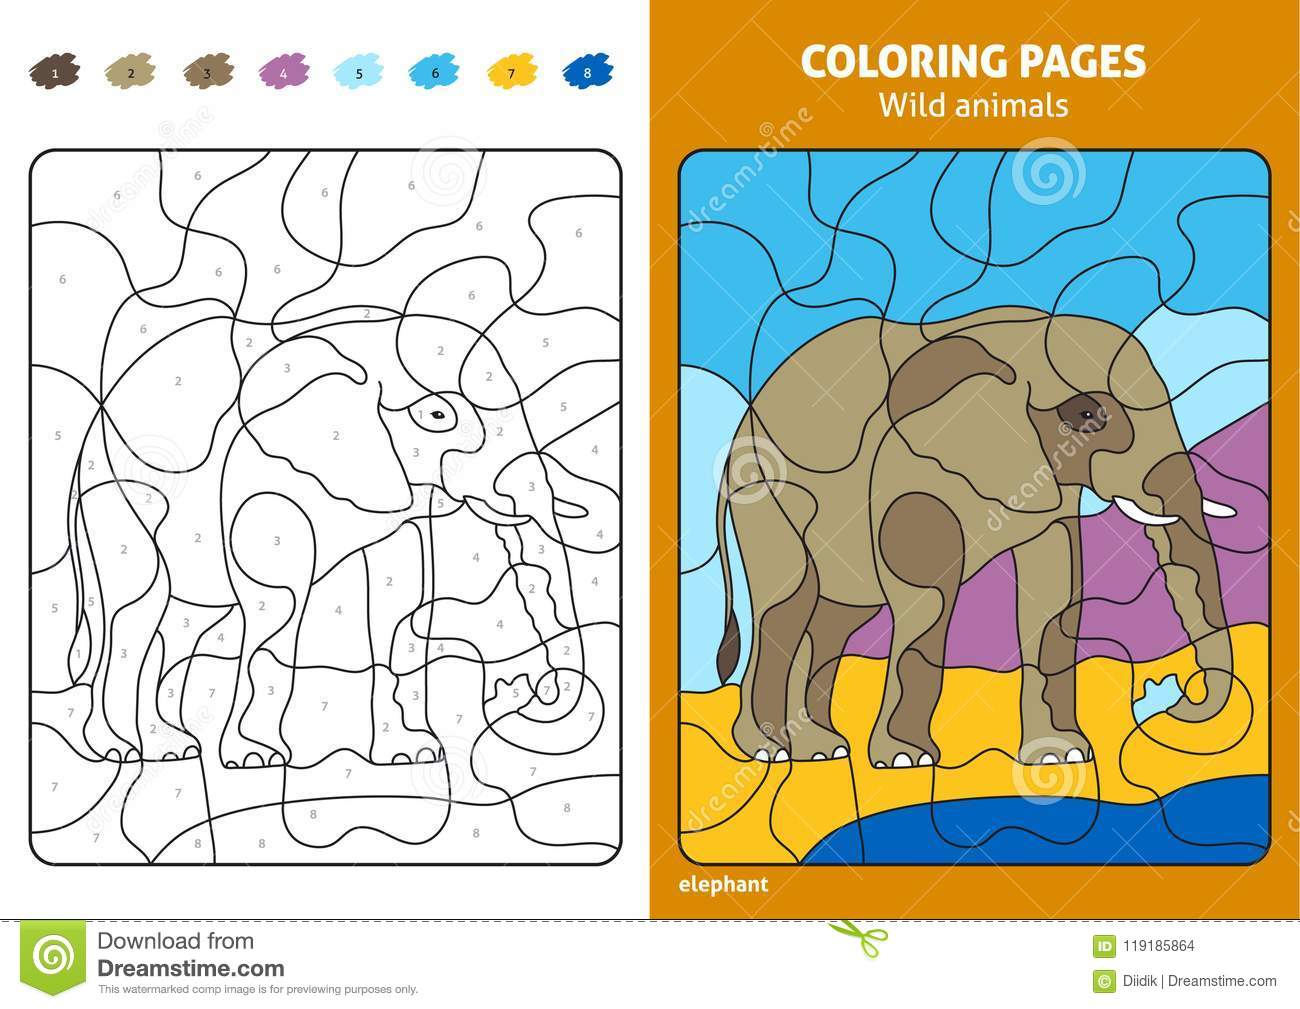 Wild Animals Coloring Page For Kids, Elephant. Stock Vector ...